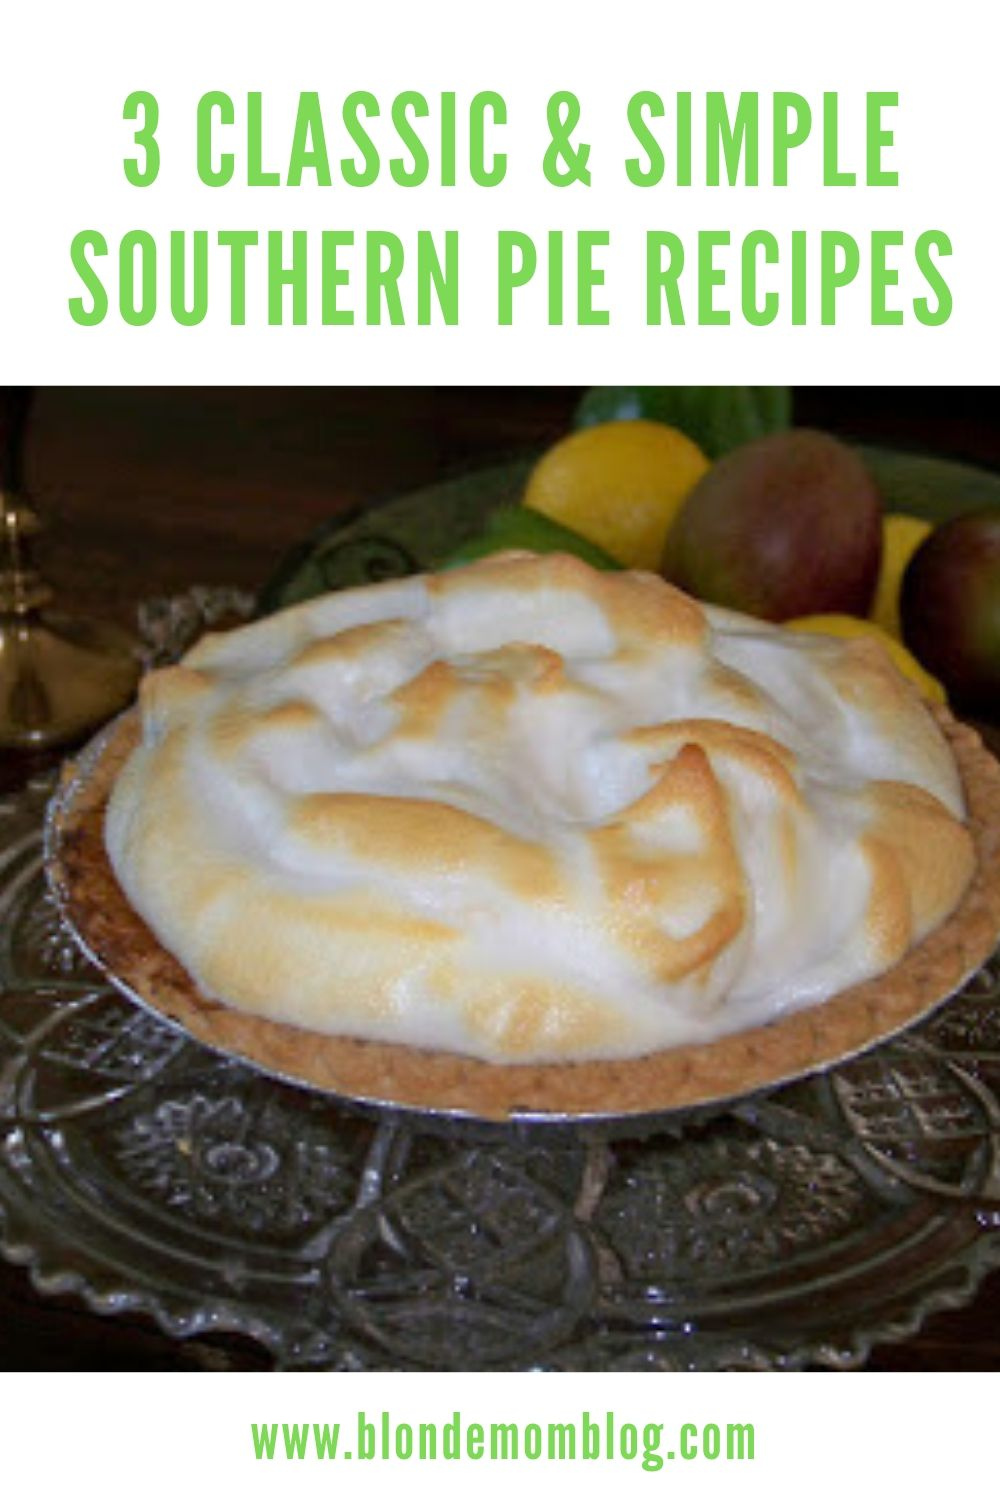 Southern pie recipes